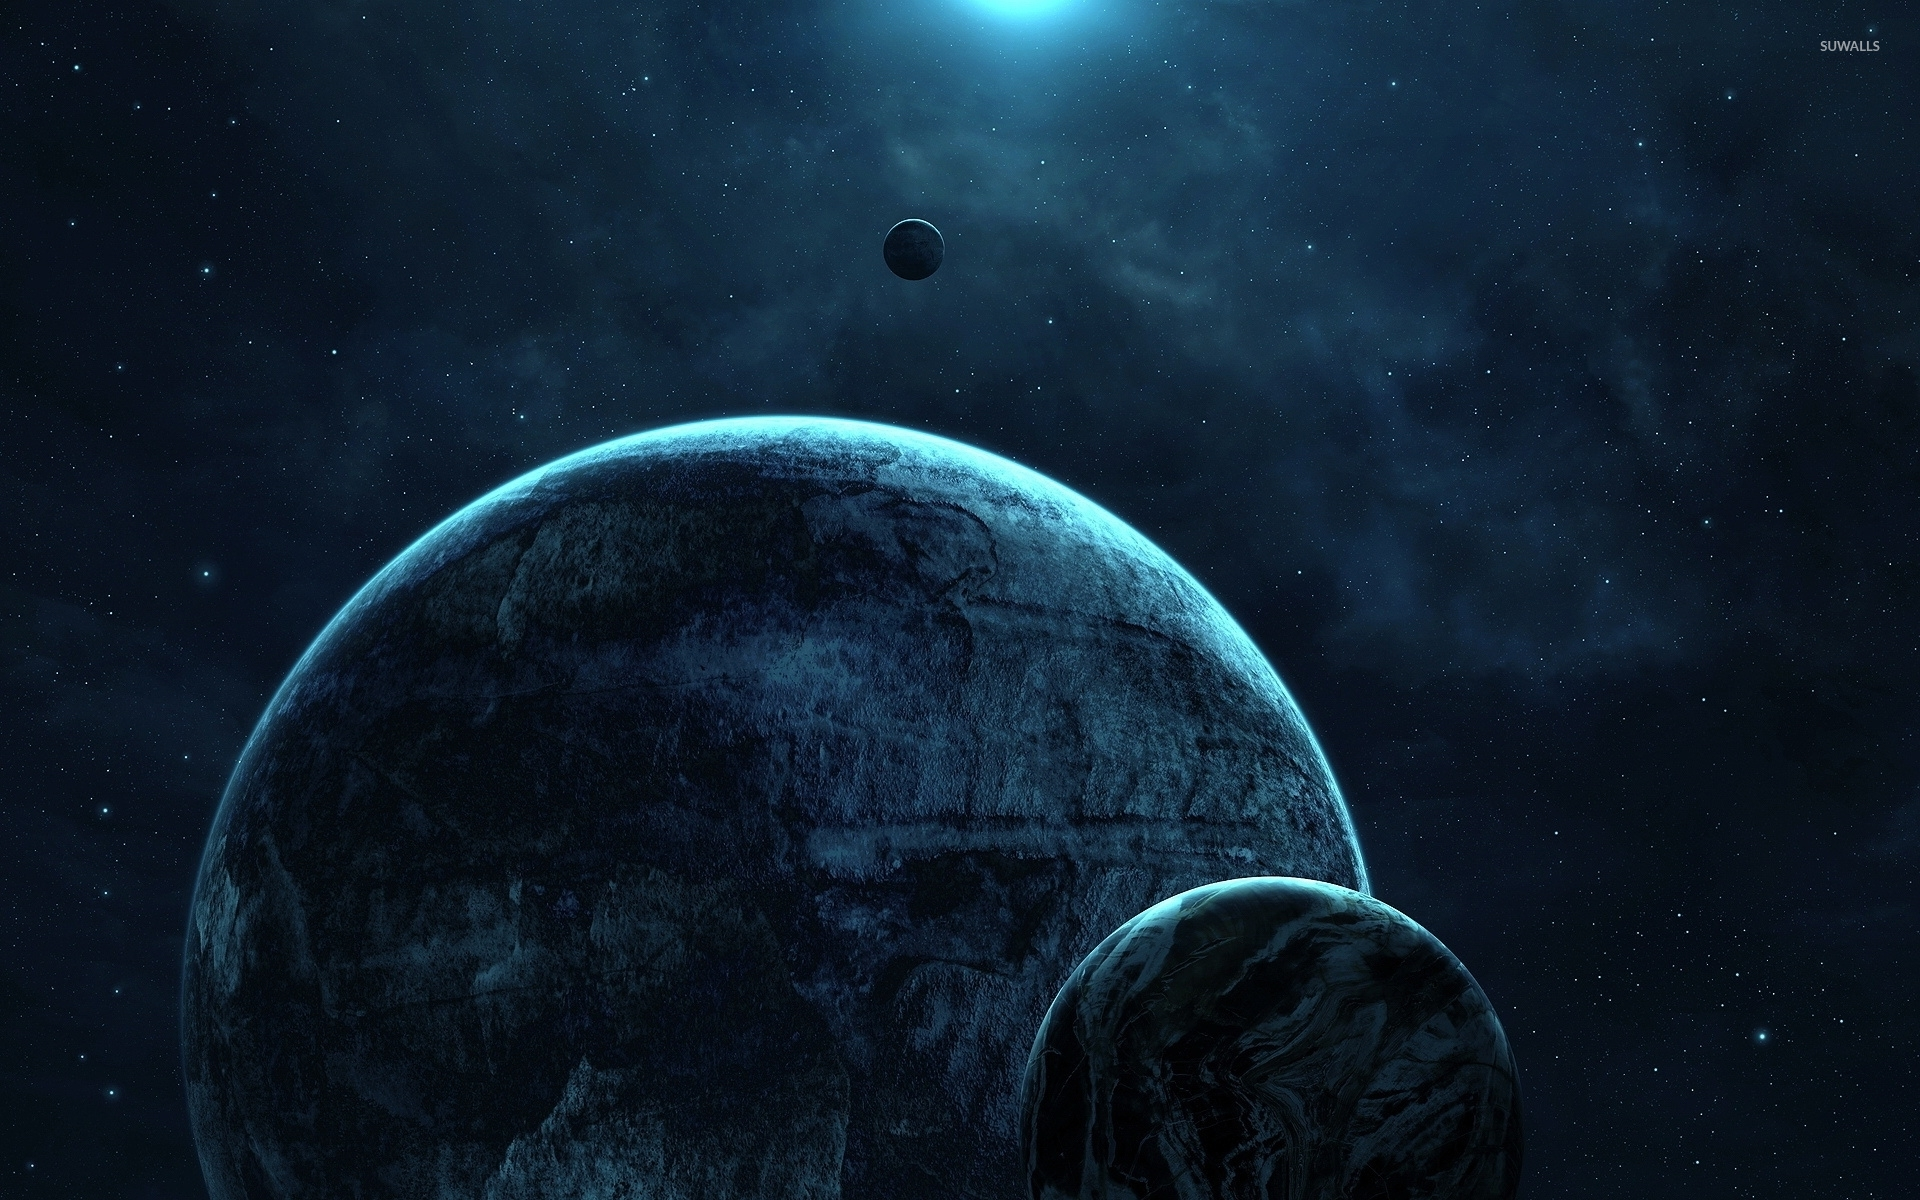 Dark Planets Wallpaper